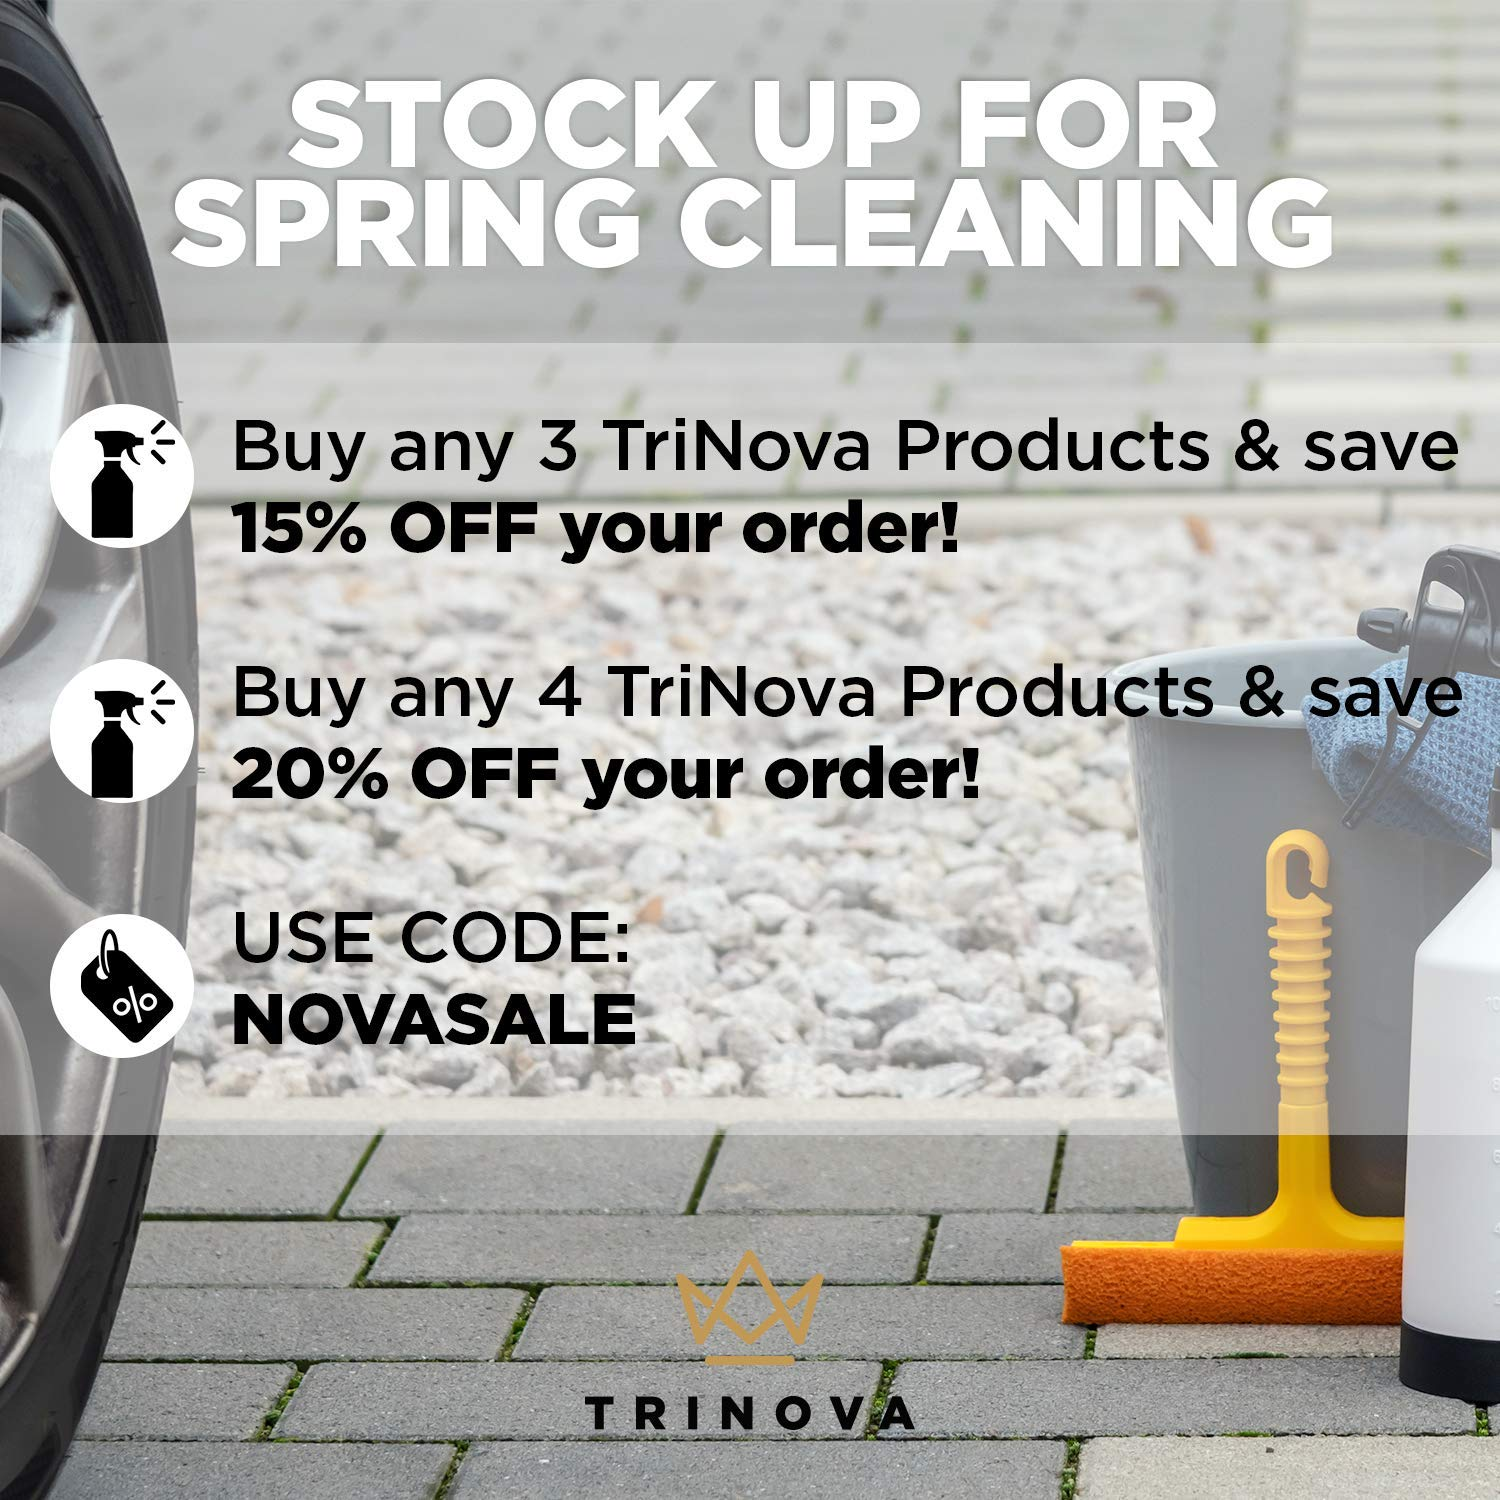 TriNova Tire Shine Gallon Size - Concentrate Leaves Brilliant Wet Looking Shine, Perfect for Detailer. Best Dressing for Slick Finish on Tires, Rubber, Wheels. Bulk gal 128oz